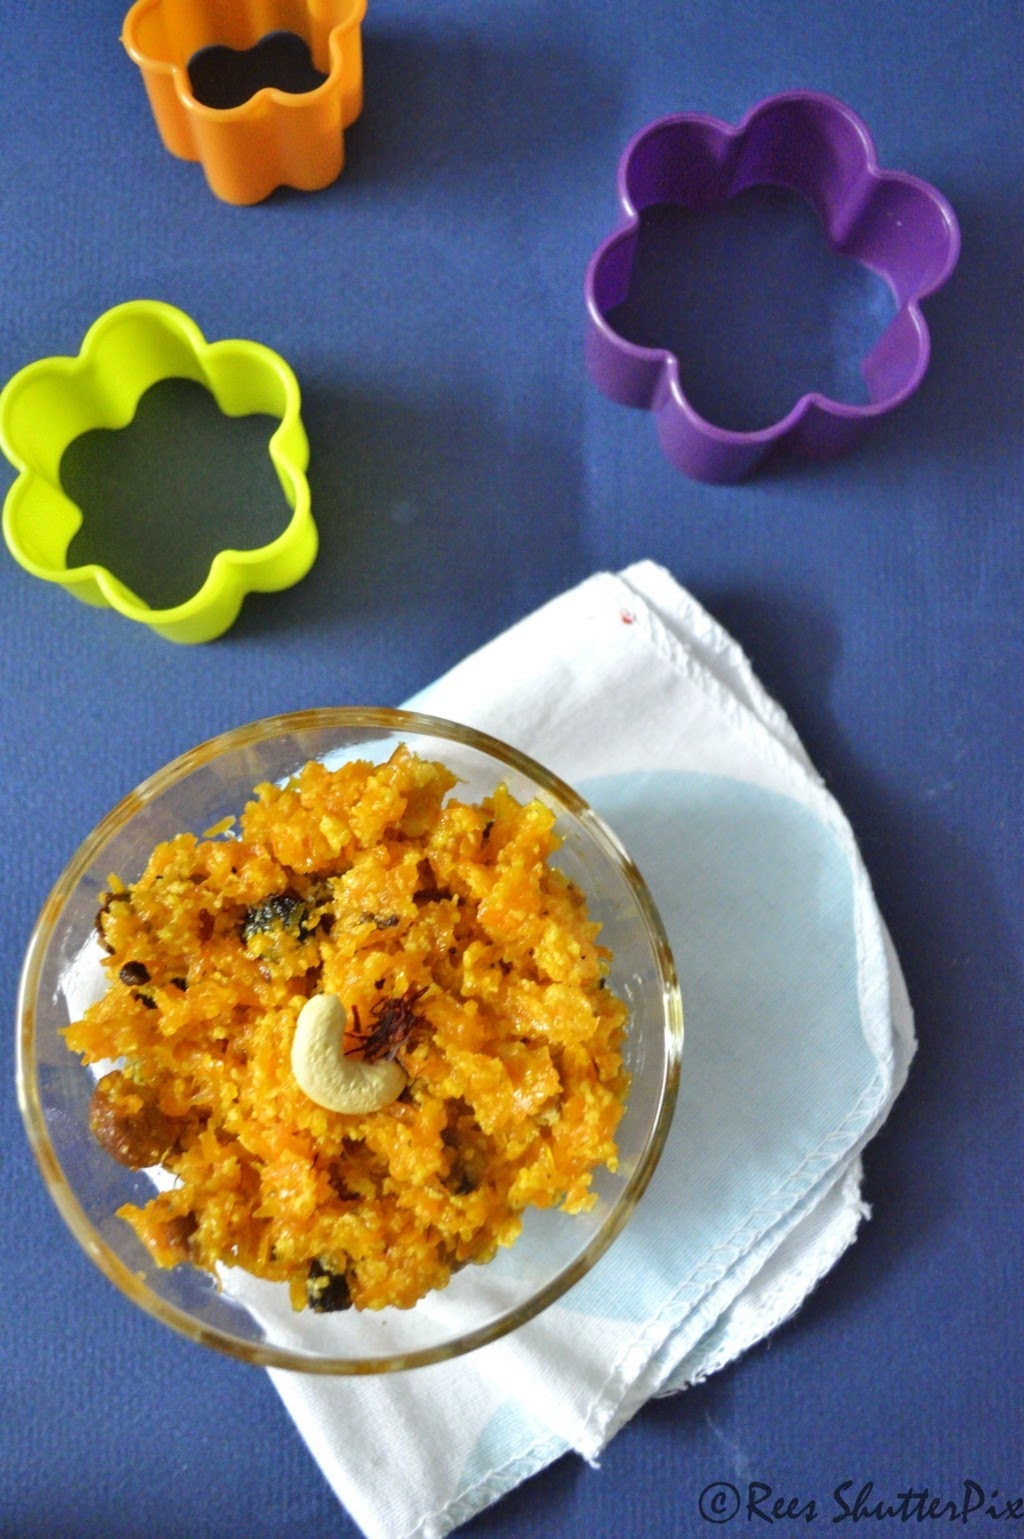 easy sweet recipe, Festive Sweets, carrot halwa using milk recipe, how to make carrot halwa, carrot halwa recipe, gajar ka halwa recipe, recipes of carrot, carrot recipes, easy carrot halwa with step wise pictures, step by step picture recipe, quick carrot halwa, prepare carrot halwa